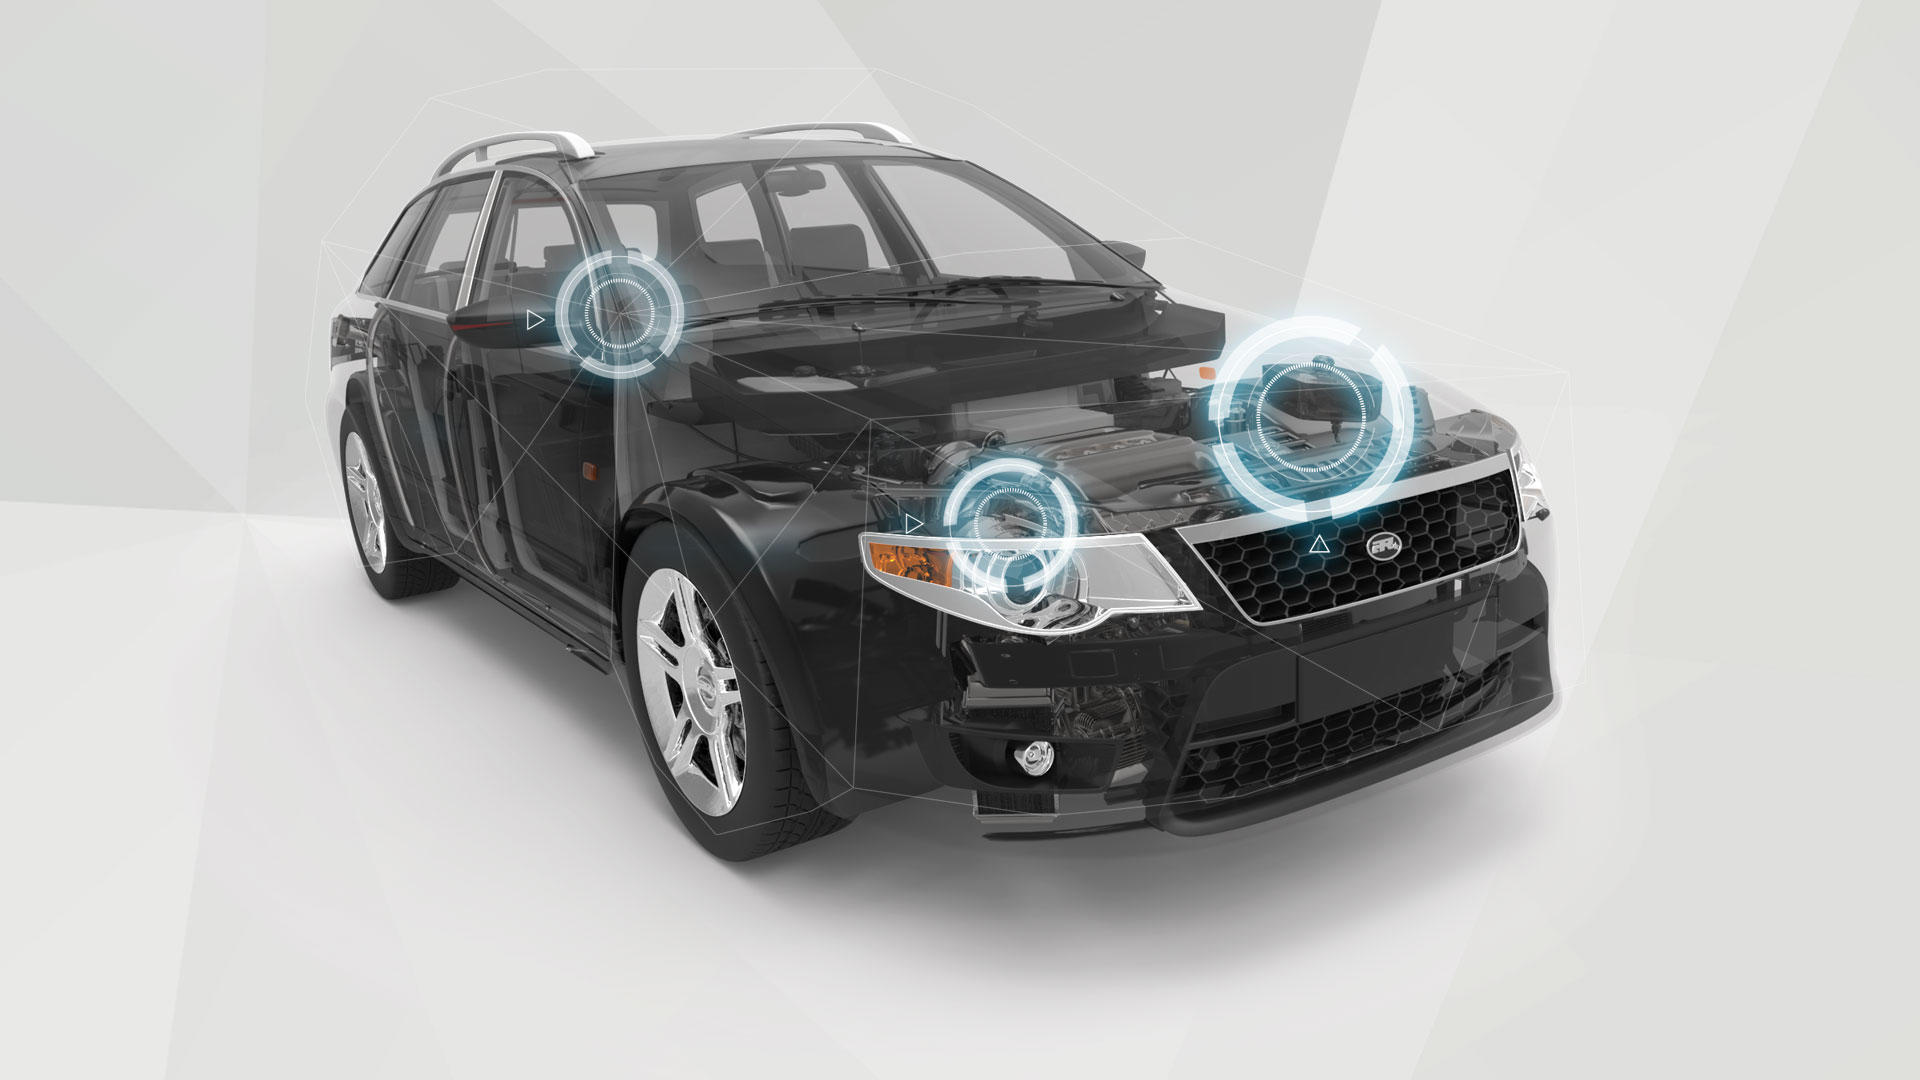 Fastening and assembly solutions for automotive